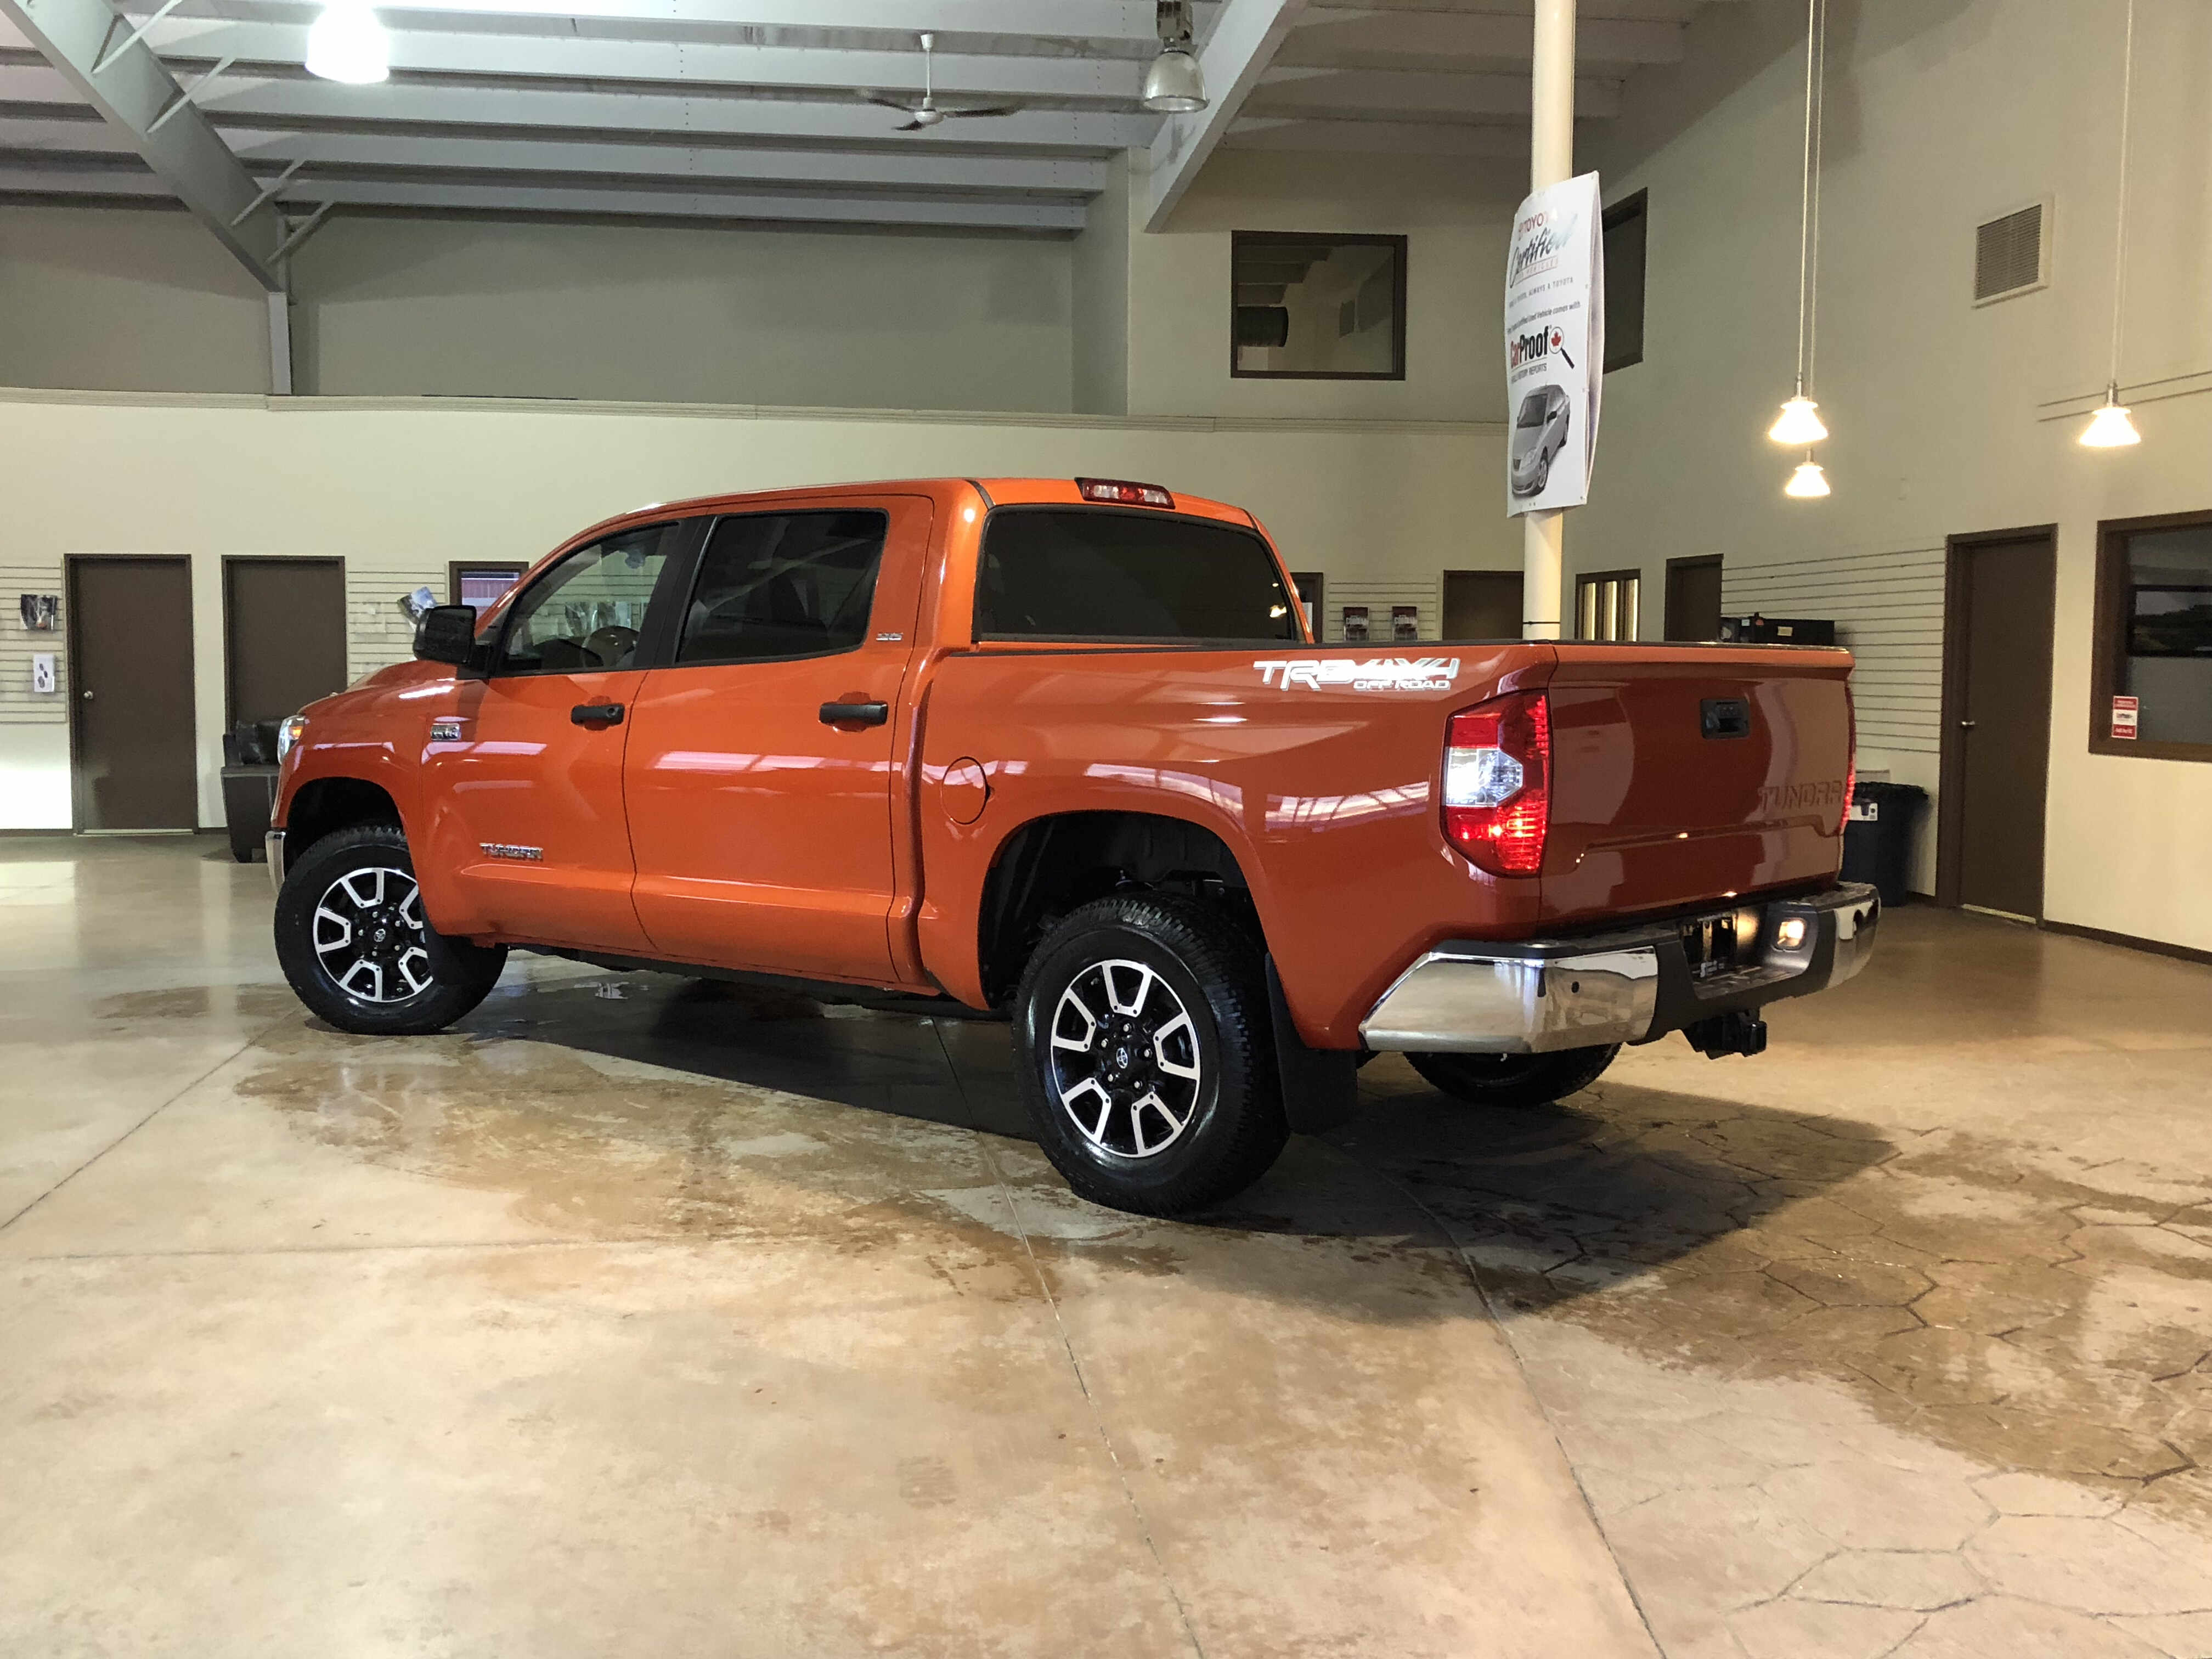 trd prairie road crewmax toyota new crew grande max in off tundra inventory